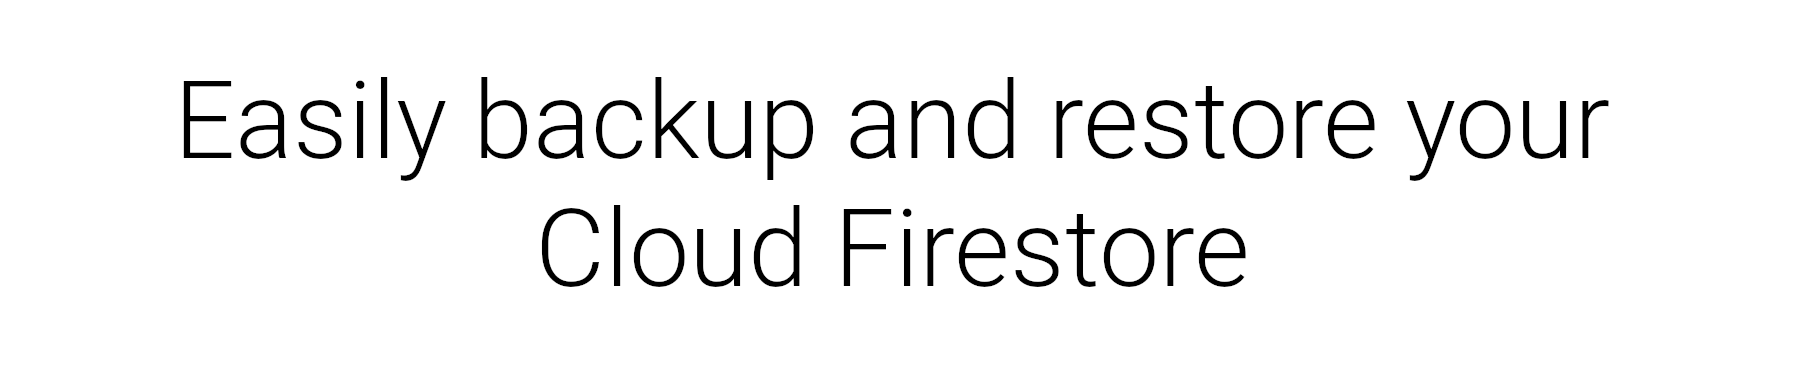 Easily backup and restore Firebase Cloud Firestore to Google Cloud Storage with a graphical user interface